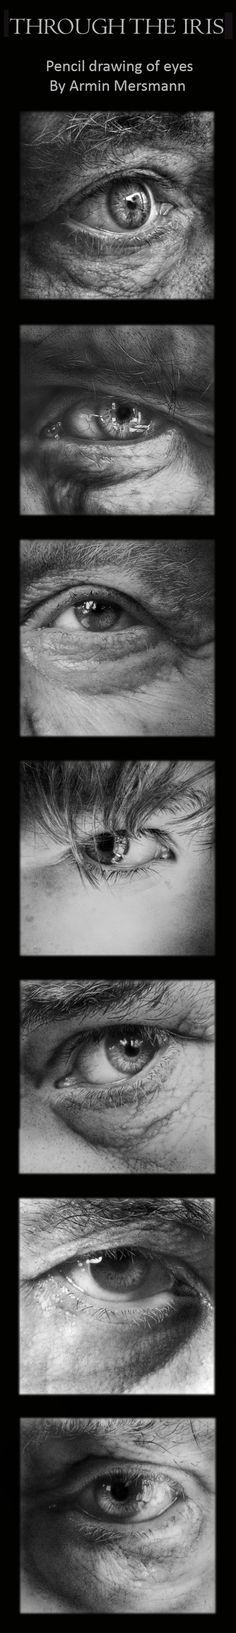 Pencil b+w drawing of hyperreal eyes by Armin Mersmann